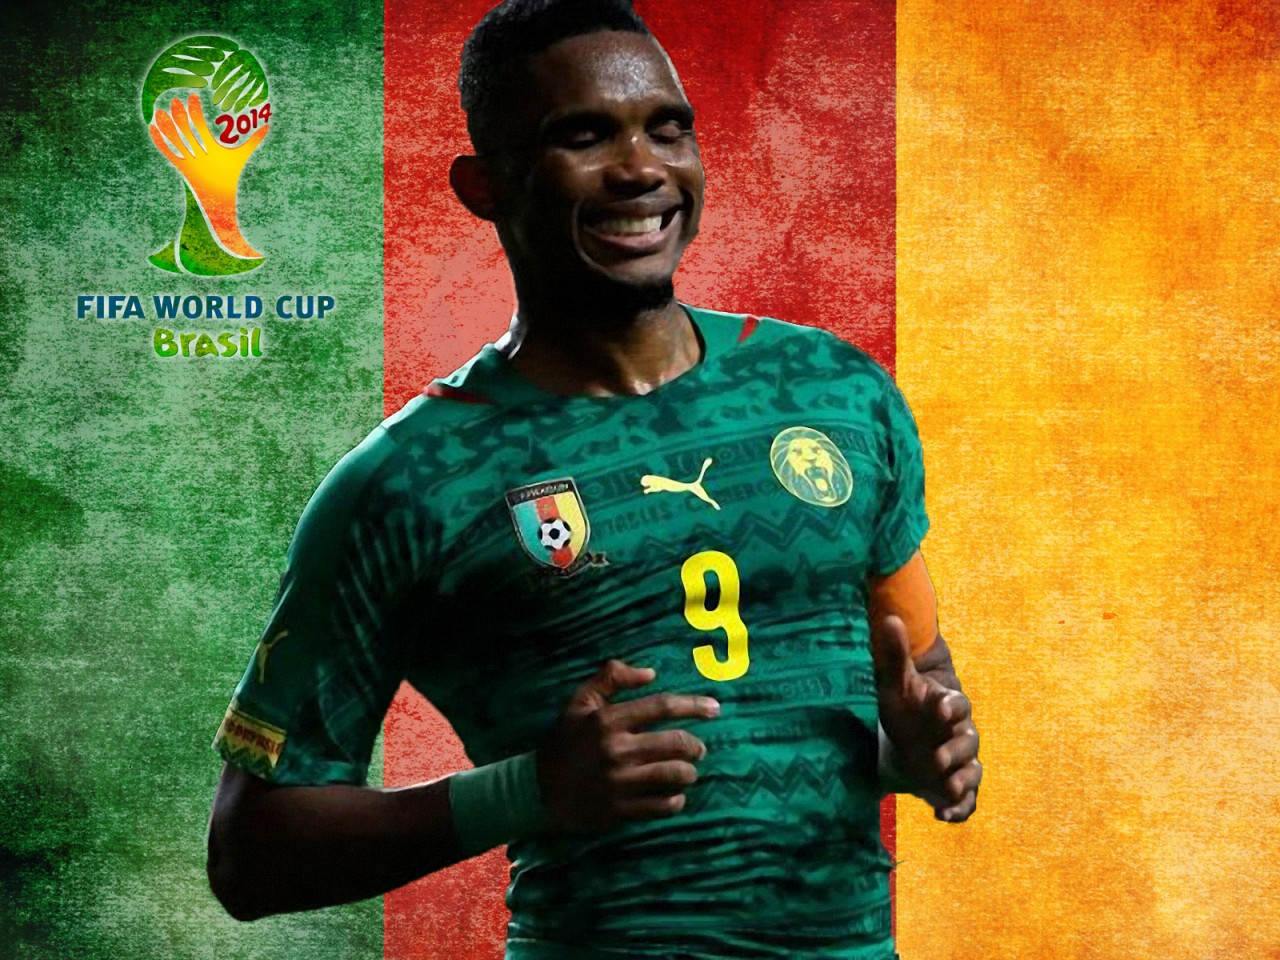 reputable site 05374 3cb82 Cameroon 2014 World Cup - HD Wallpapers